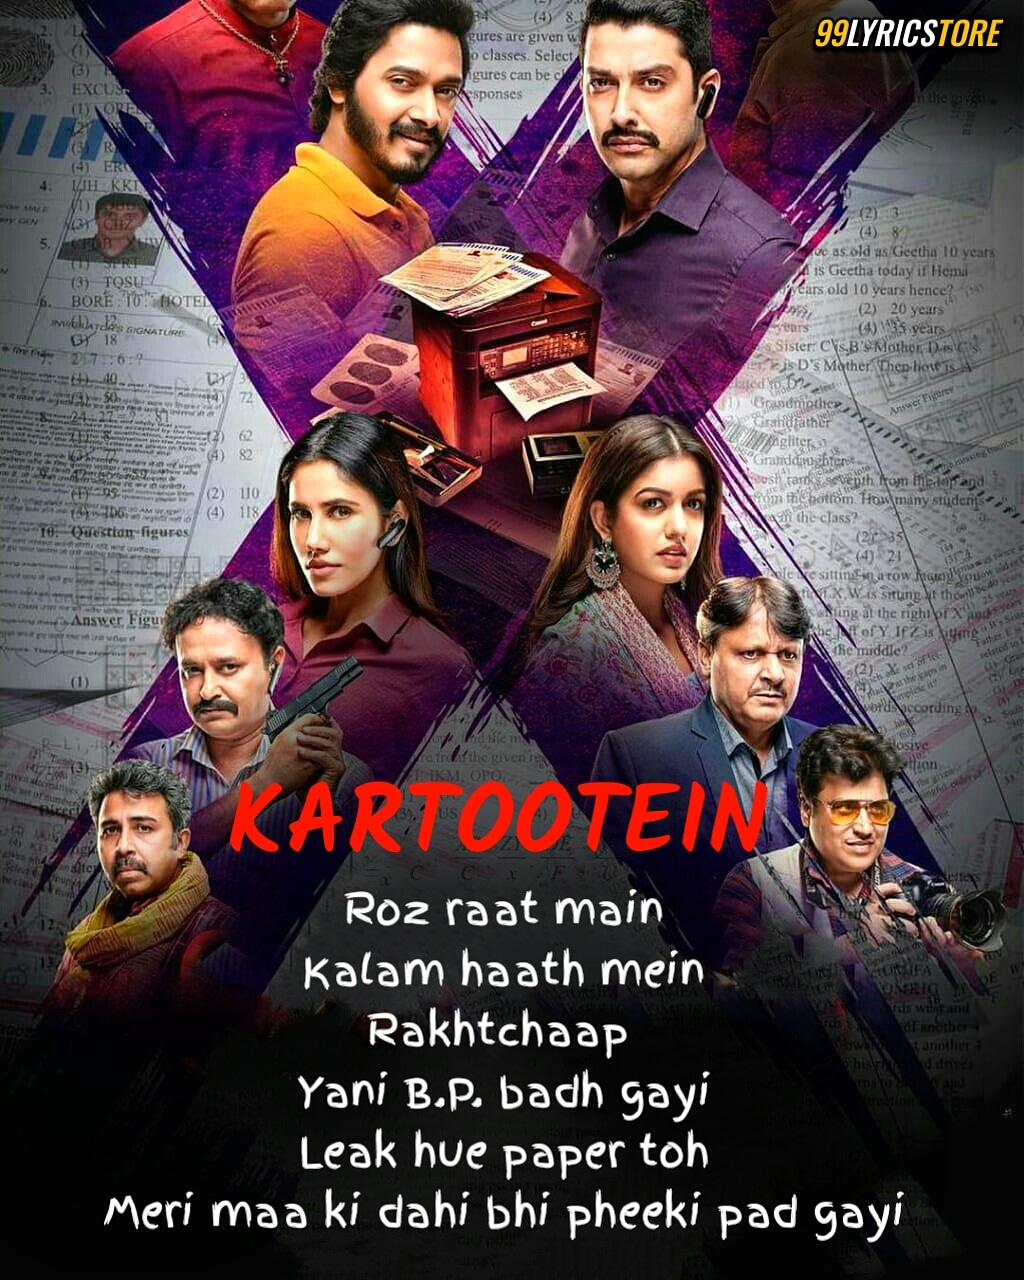 Kartootein Rap song lyrics sung by Sukhwindar Singh and Rap by 'Raftaar'